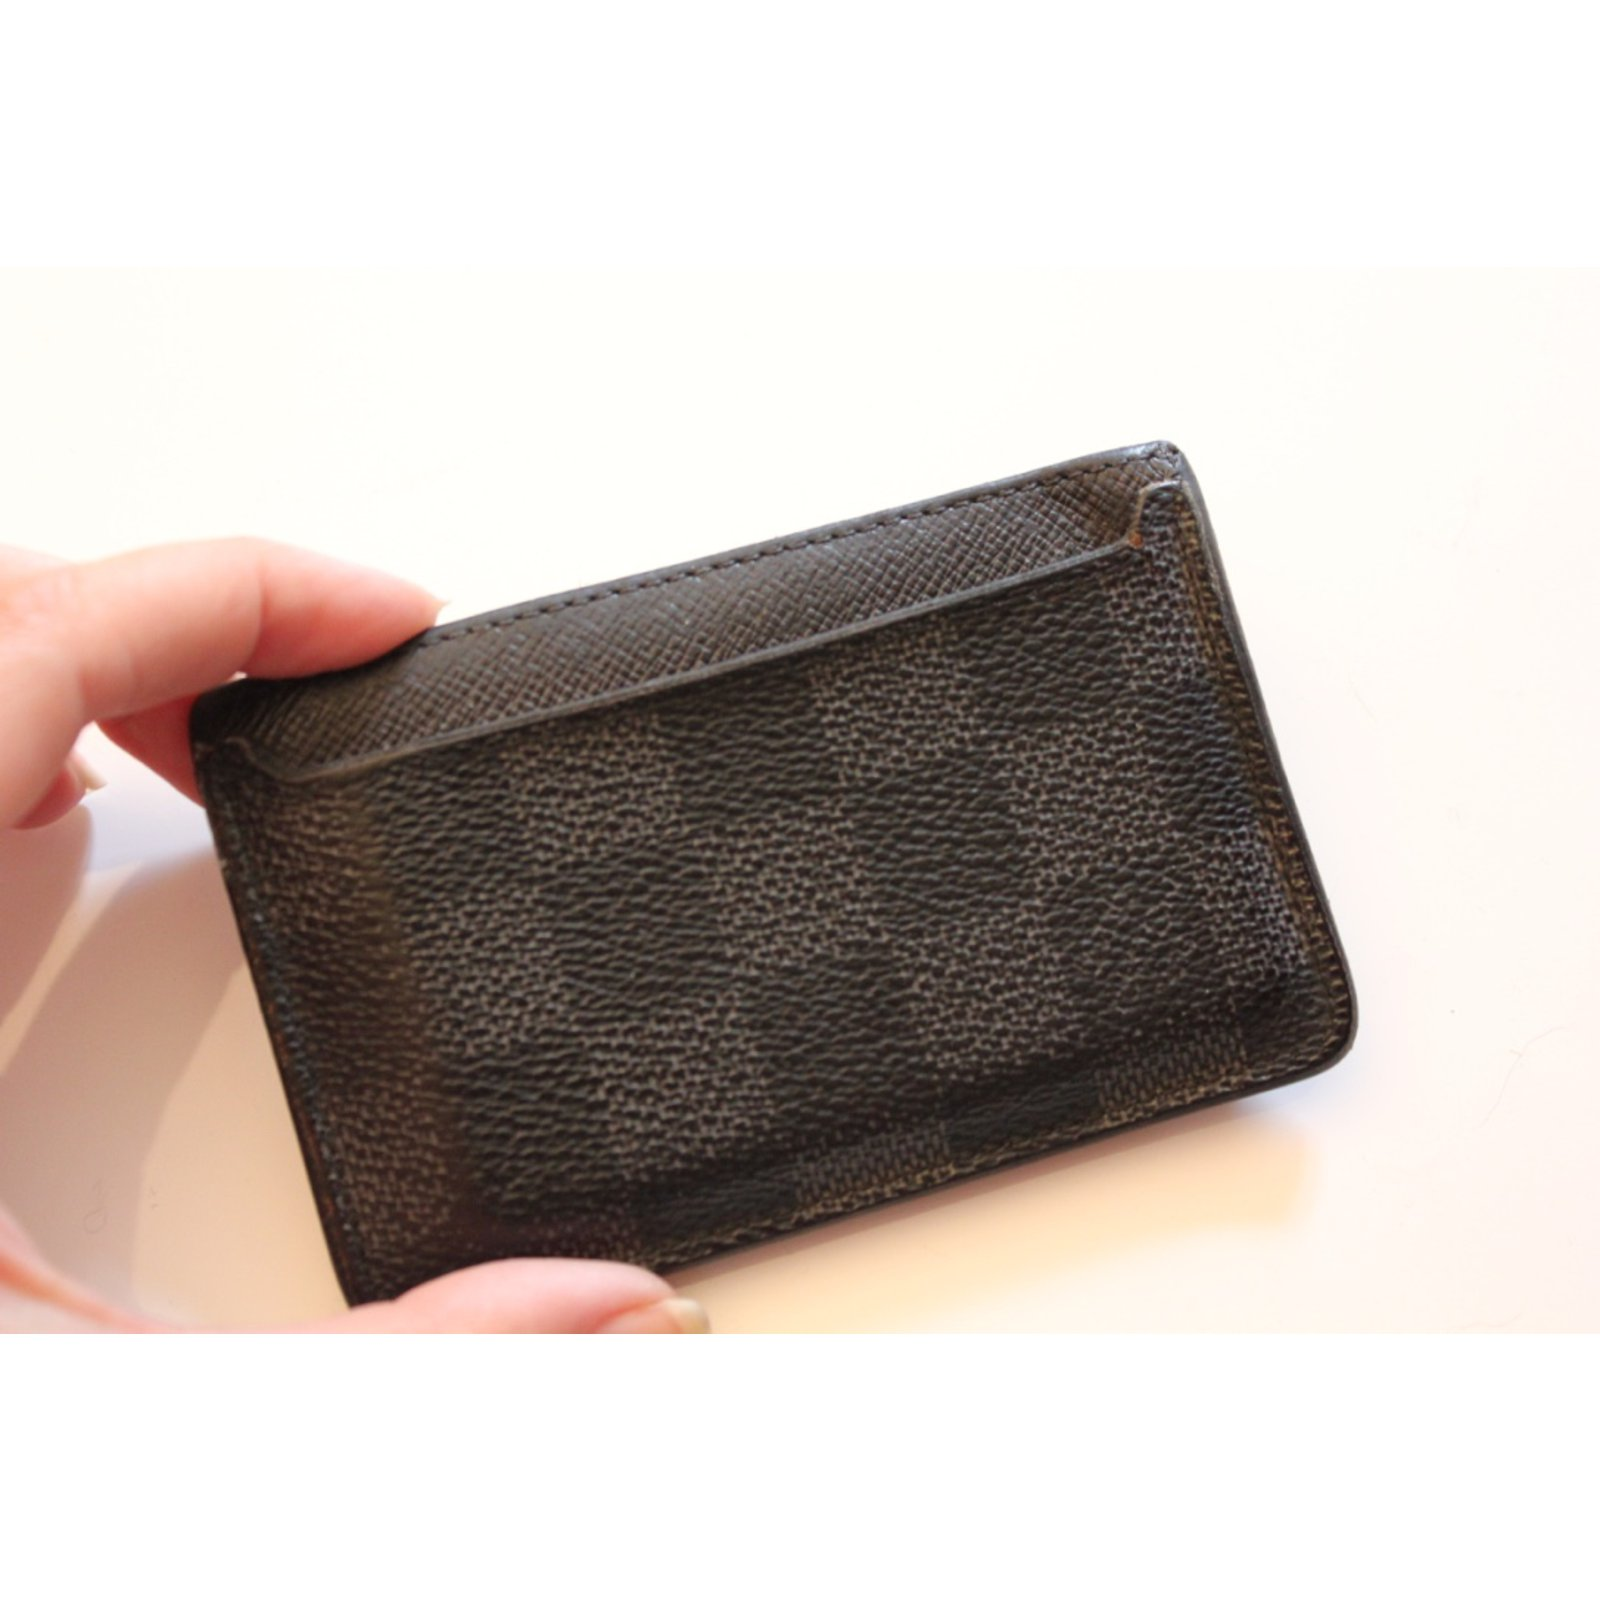 a0b7ef5164d3 Louis Vuitton Card Holder NEO Wallets Small accessories Other Grey  ref.21469 - Joli Closet